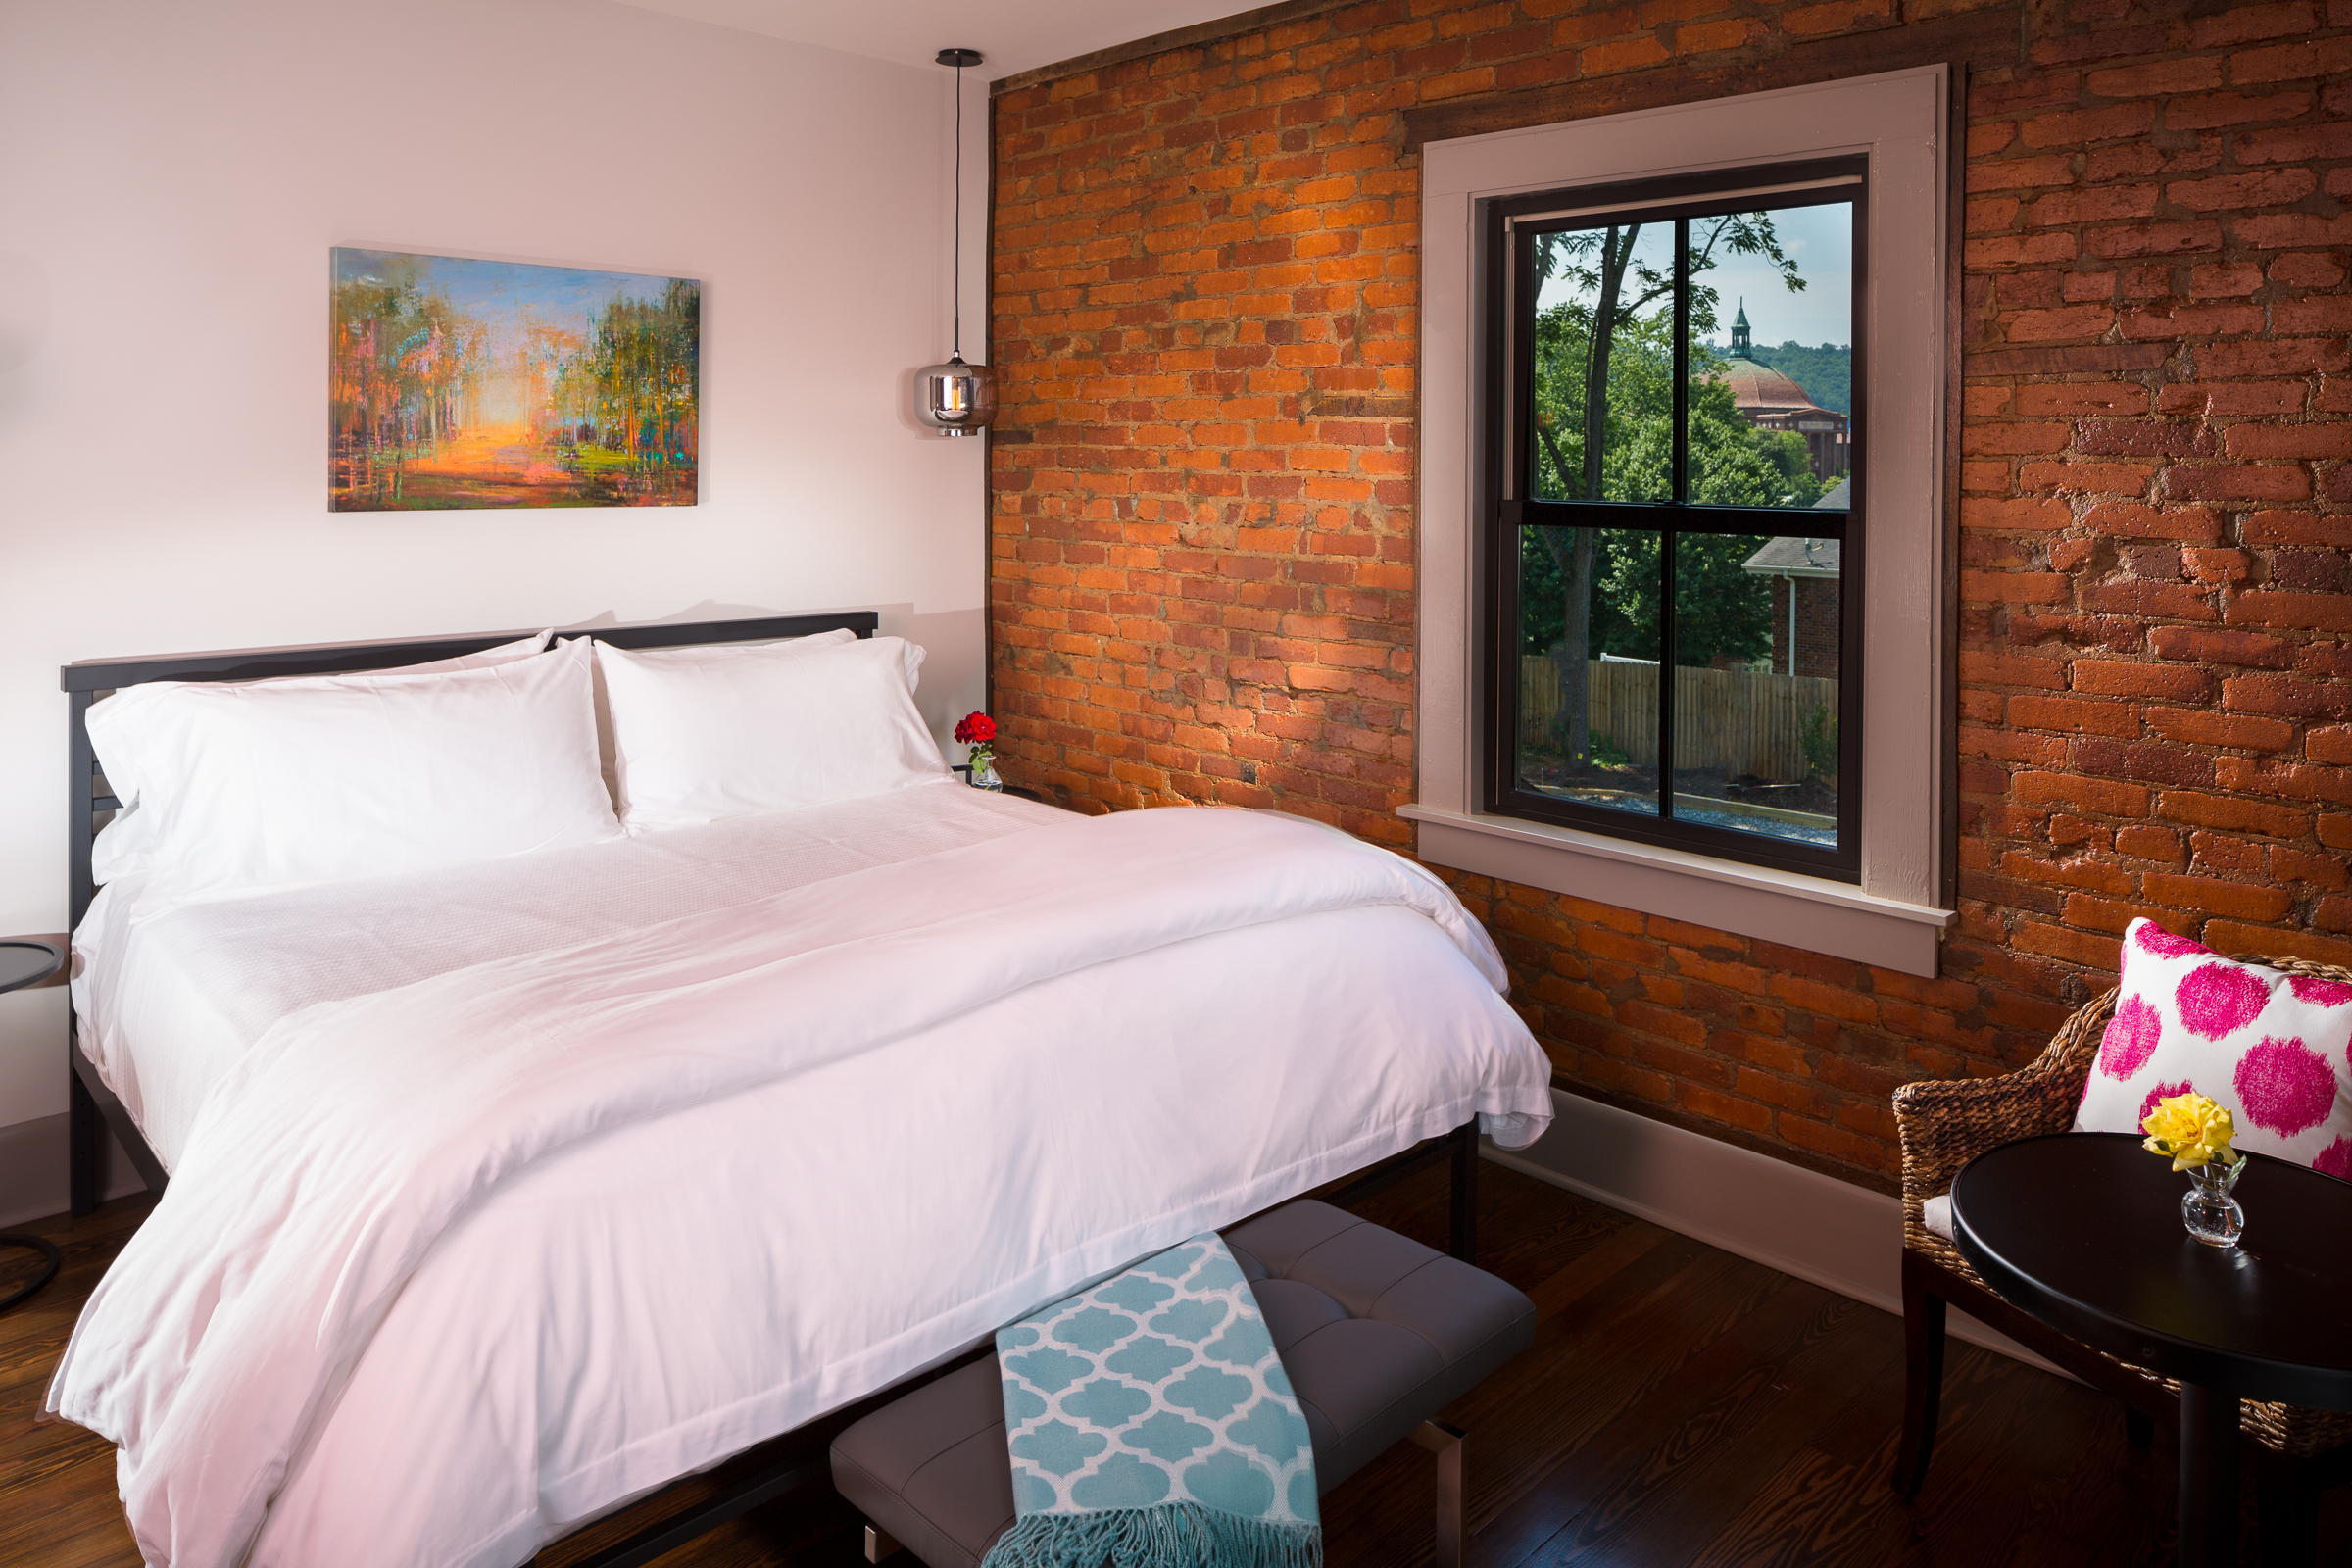 Bunn House Room View with brick.jpg